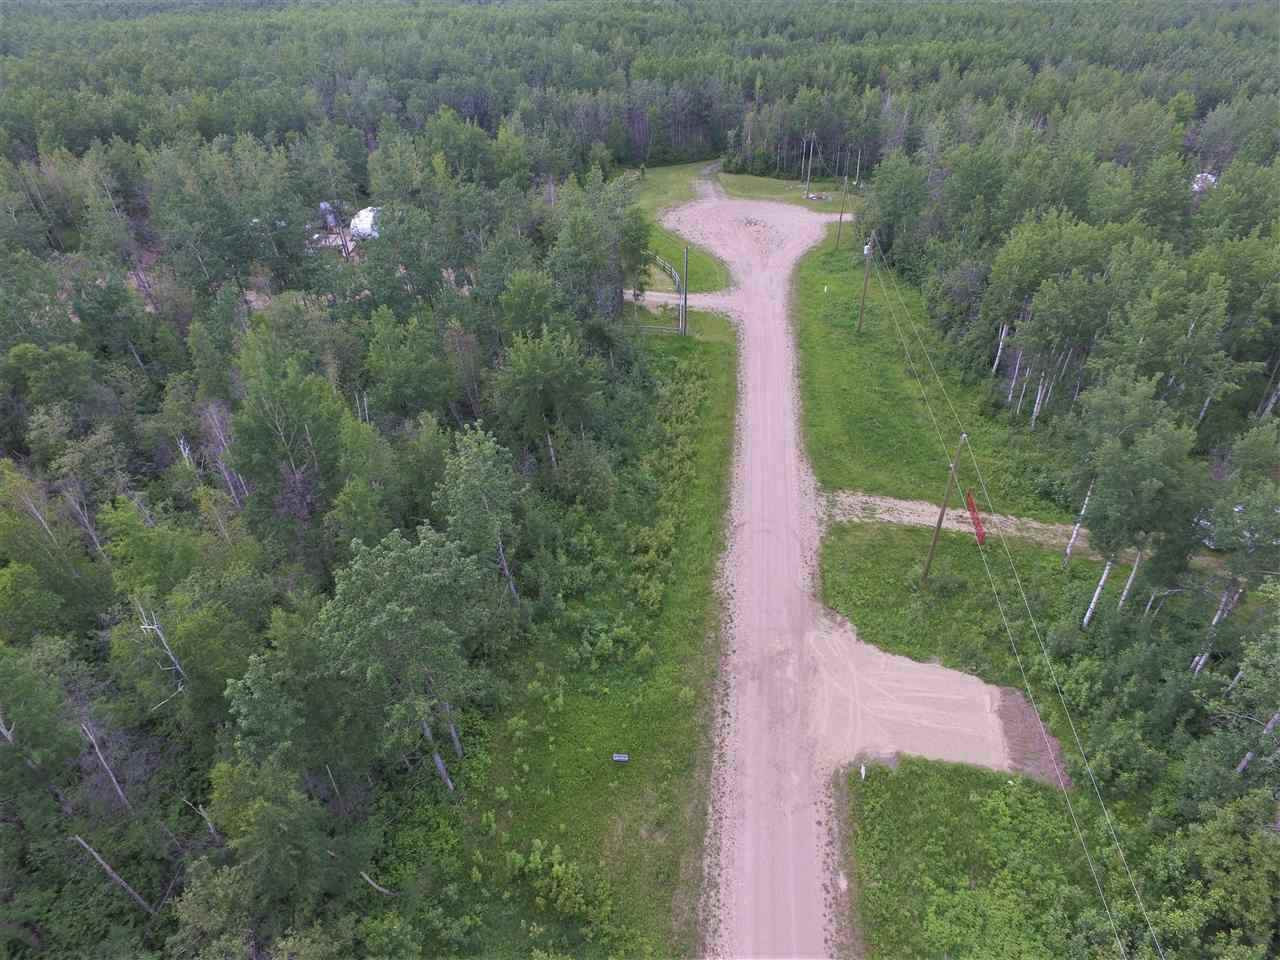 Main Photo: 11 13070 TWP RD 464: Rural Wetaskiwin County Rural Land/Vacant Lot for sale : MLS®# E4169948